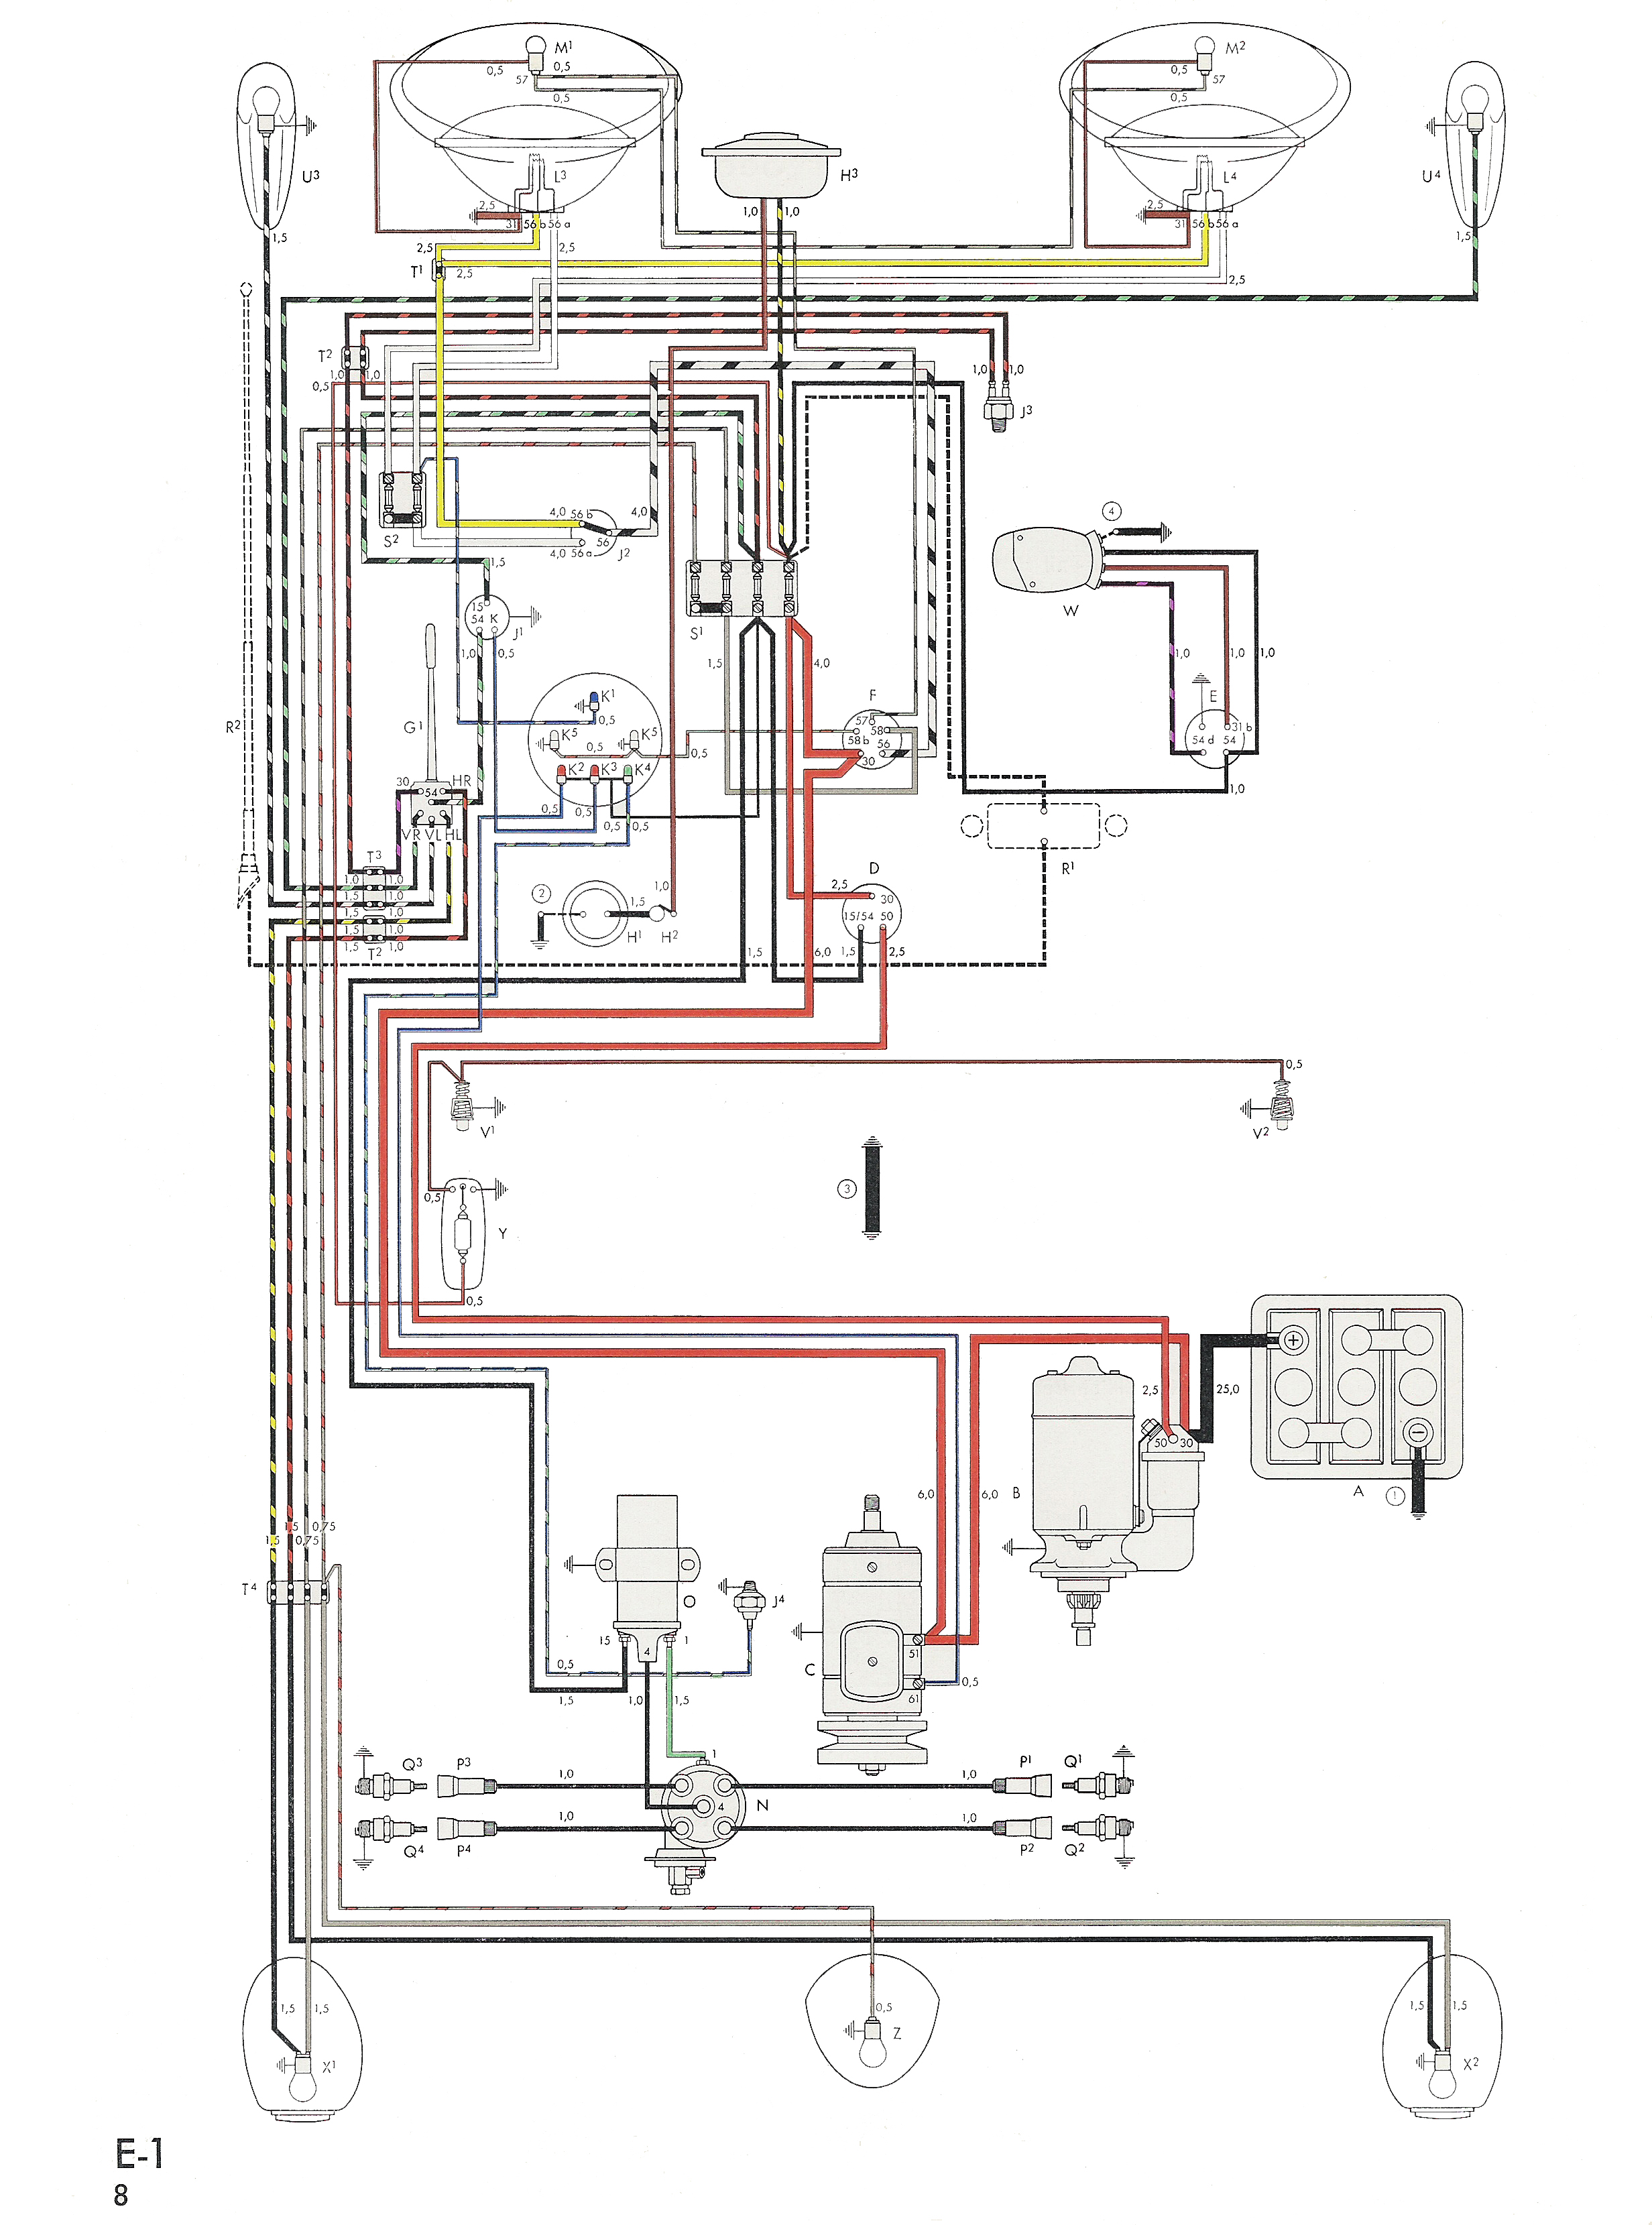 Vw Thing Engine Wire Diagram - Schematics Wiring Diagrams •